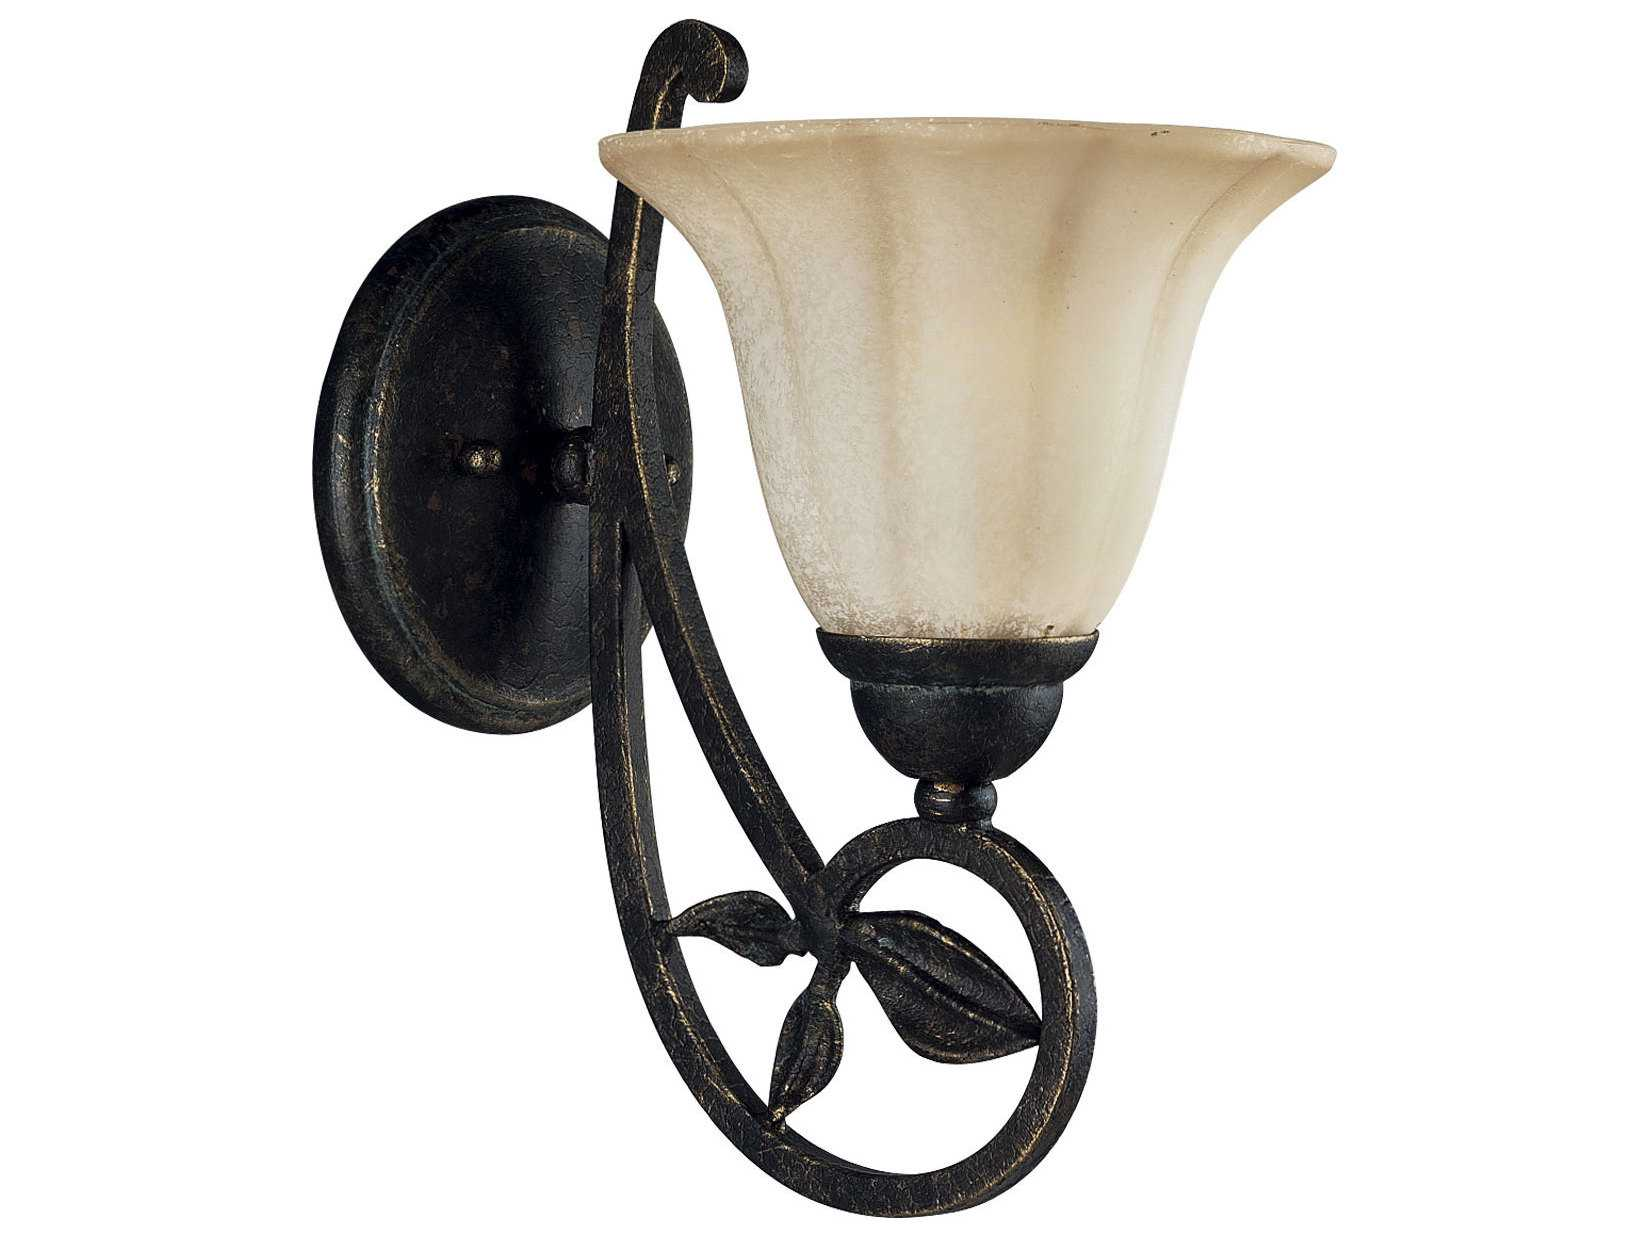 Jardin Wall Lights : Progress Lighting Le Jardin Espresso Wall Sconce PGLP301284